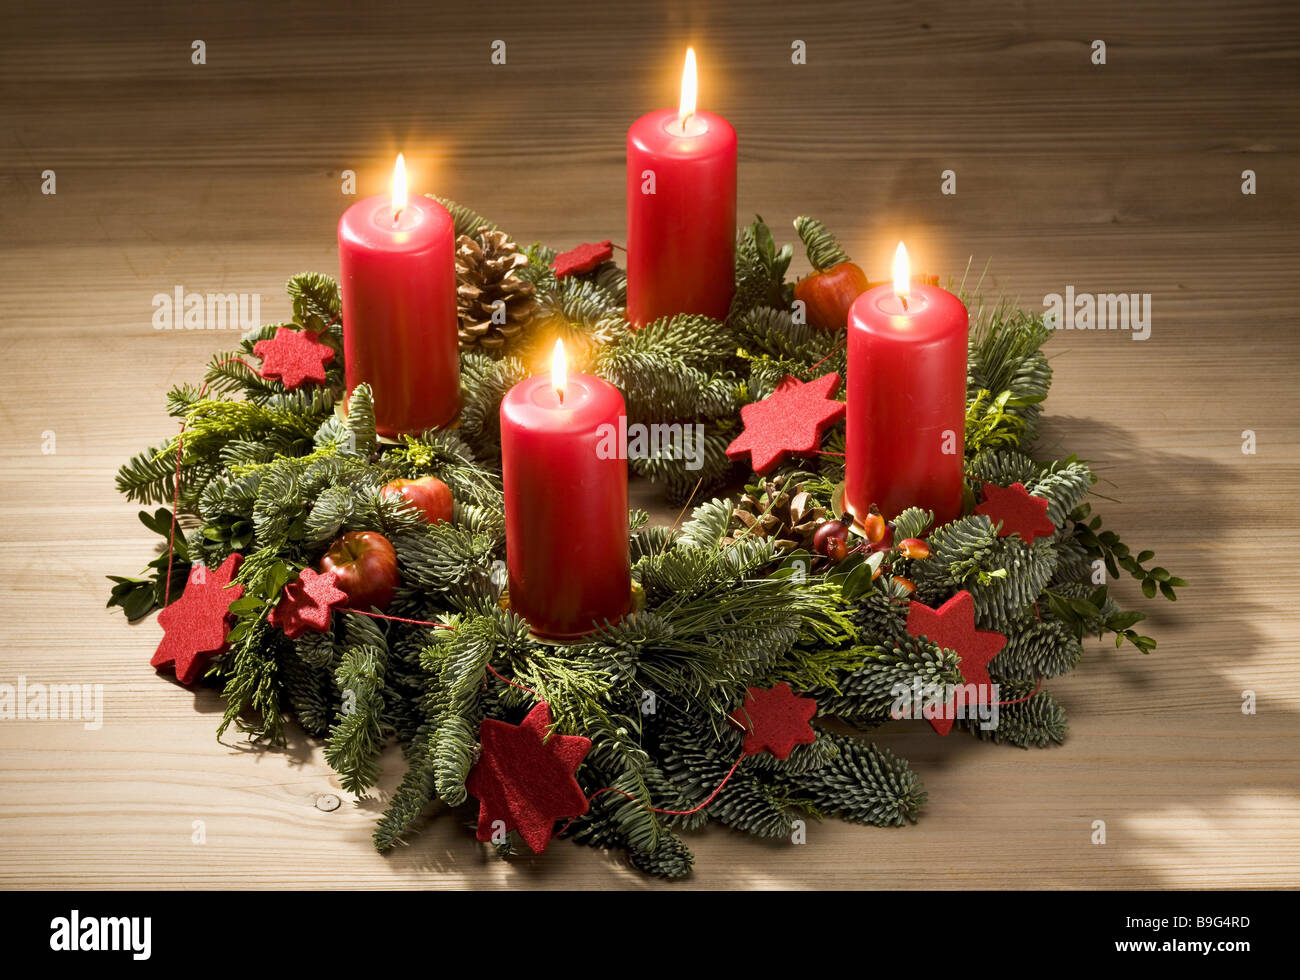 Christmas table advent wreath candles advent time burn for Advent candle decoration